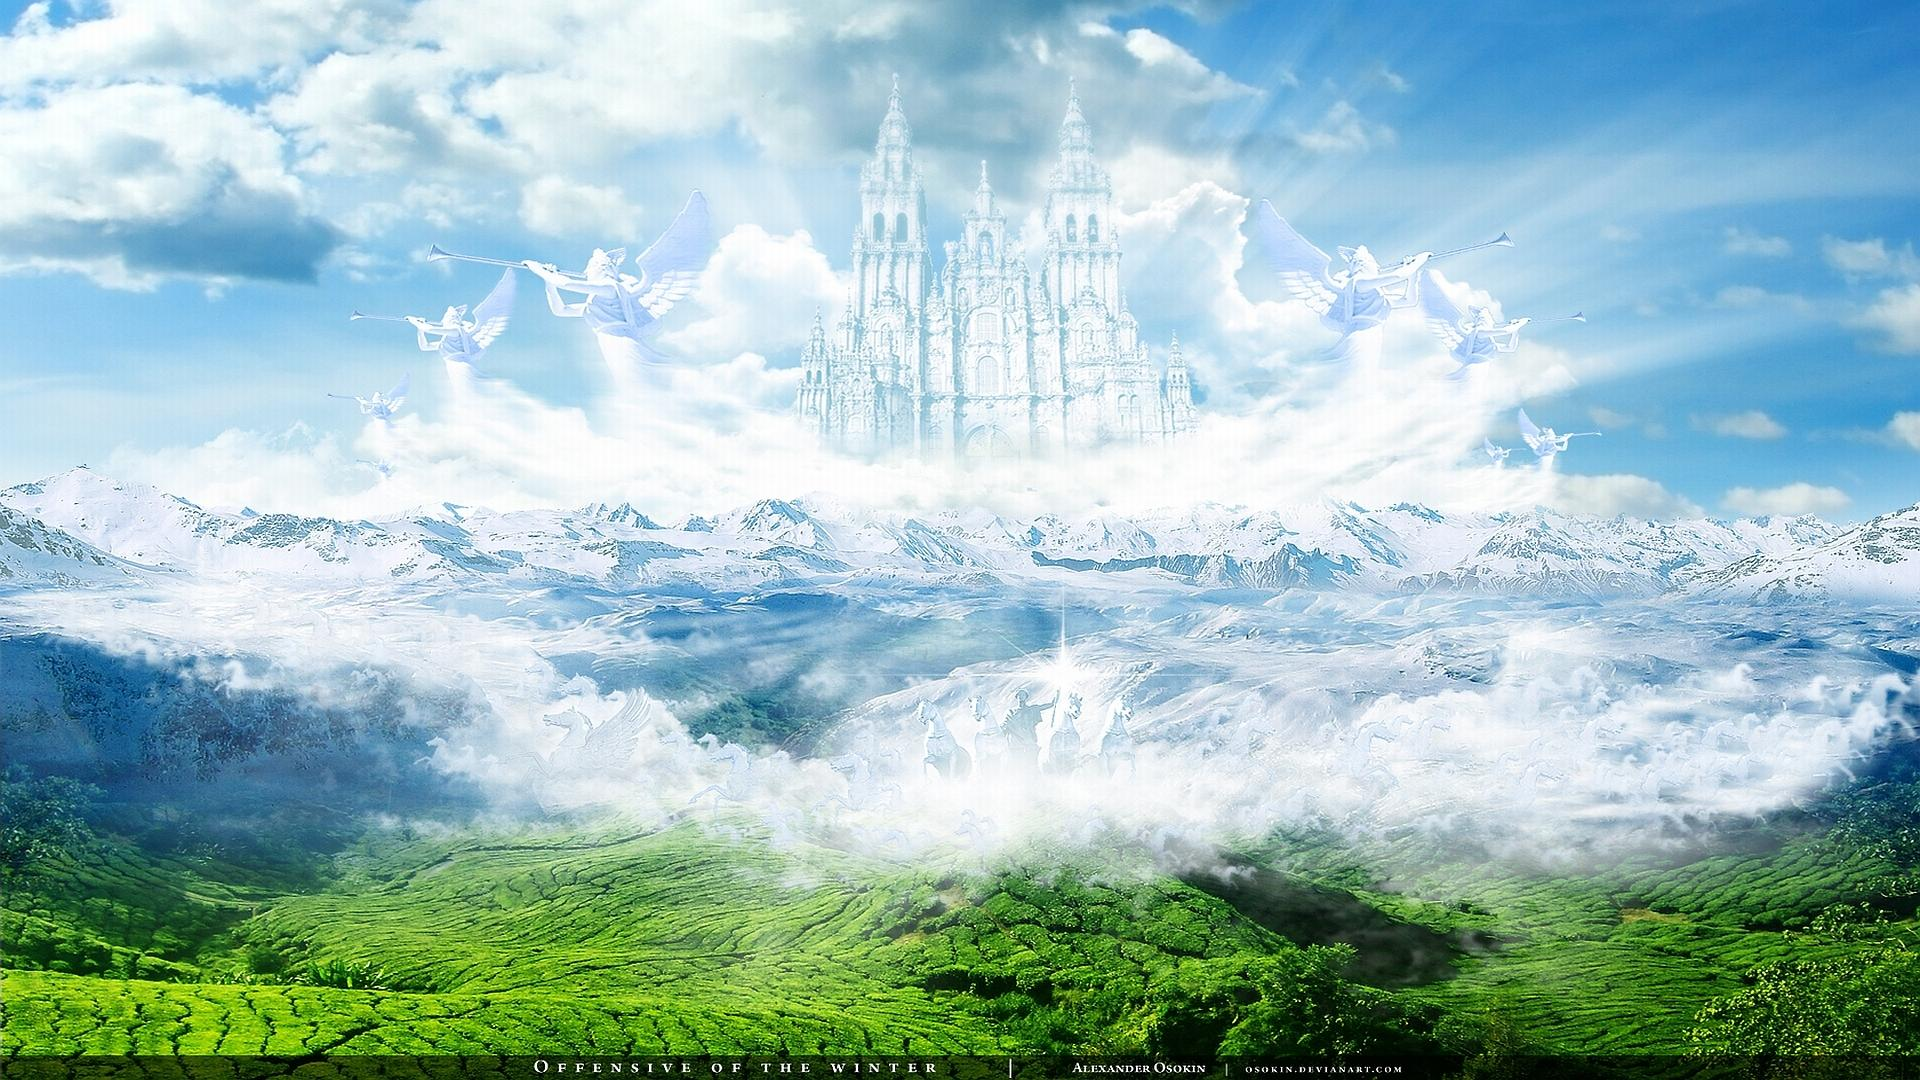 Castle Artistic wallpapers HD quality